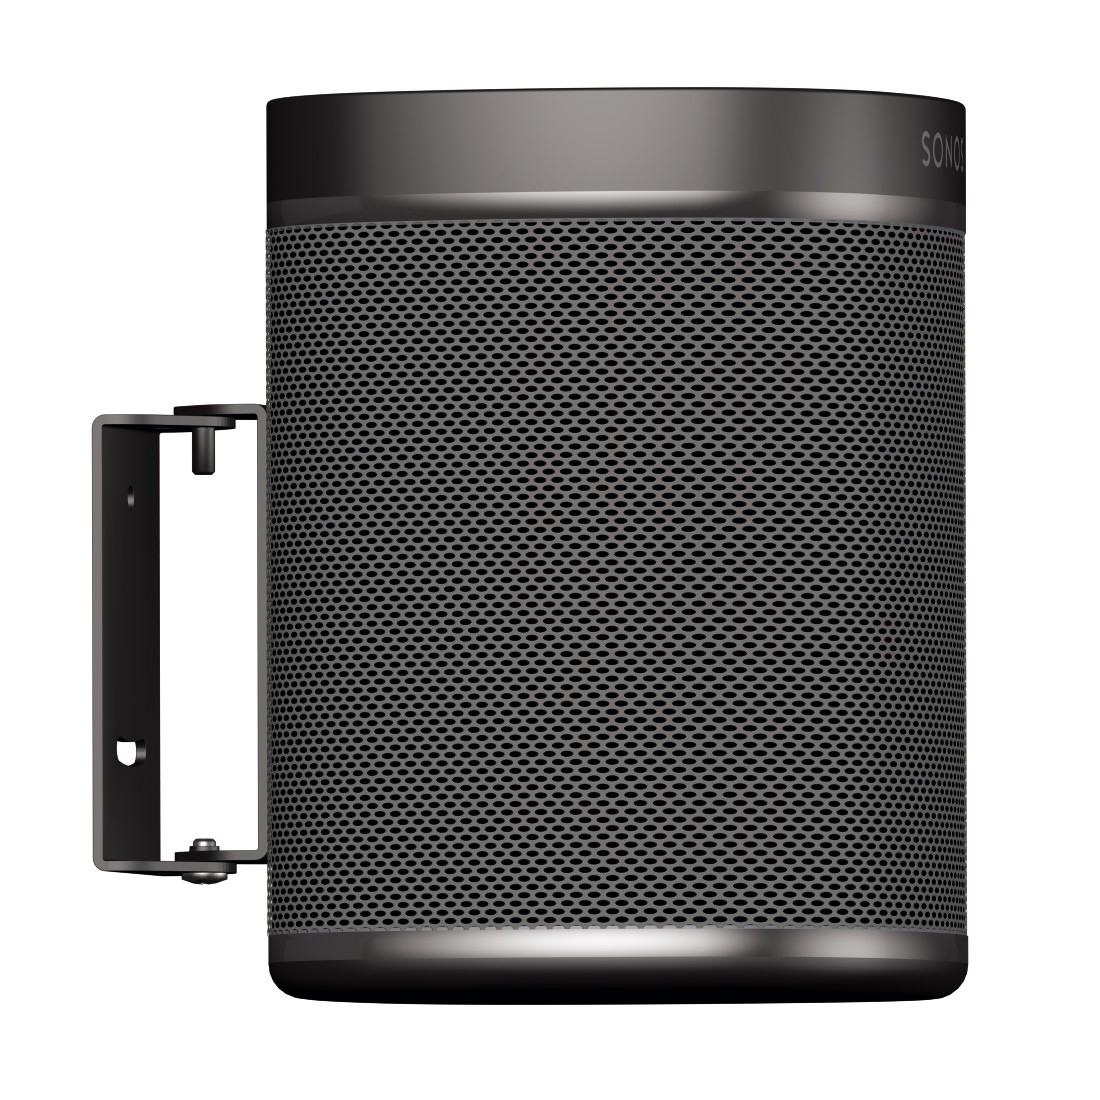 awx3 High-Res Appliance 3 - Hama, Muurbevestiging voor Sonos PLAY 1 swivel zwart